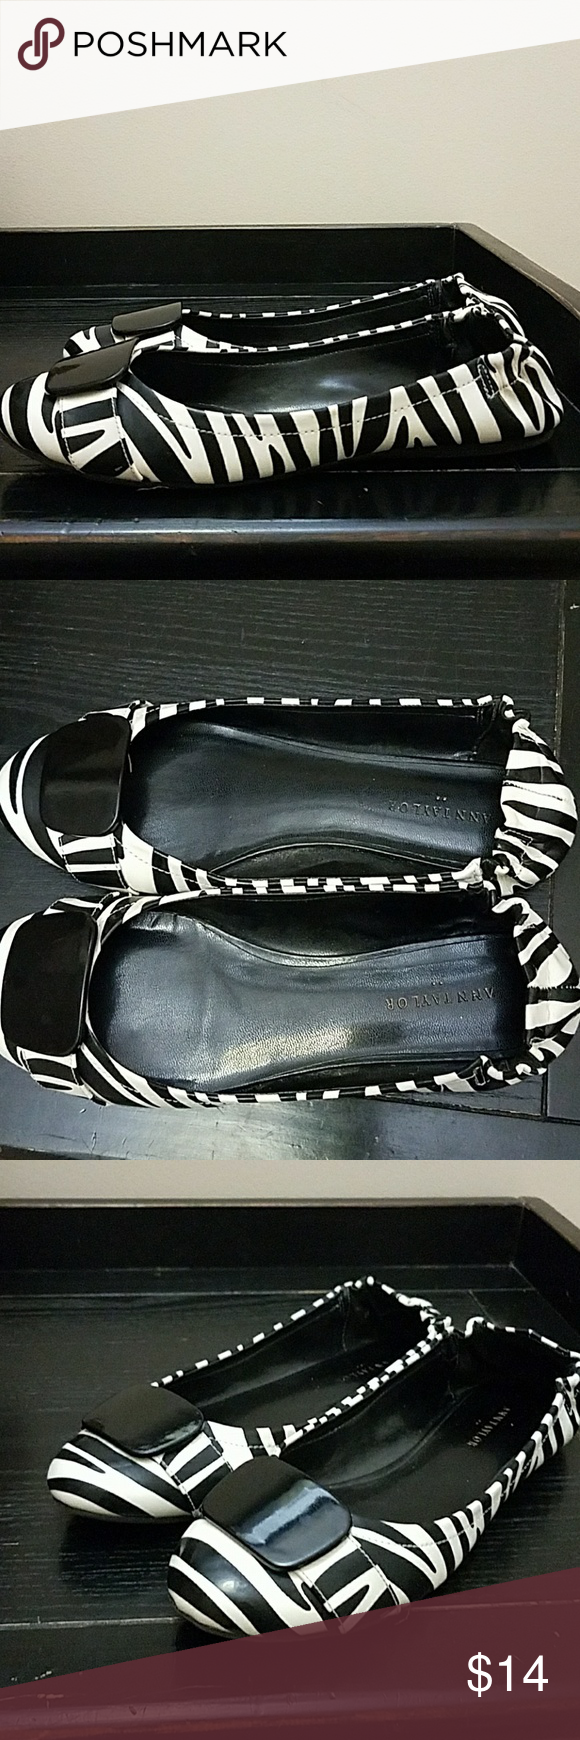 Women's Flats Zebra stripped woman's flats.  Cute for work or casual with jeans. Ann Taylor Factory Shoes Flats & Loafers